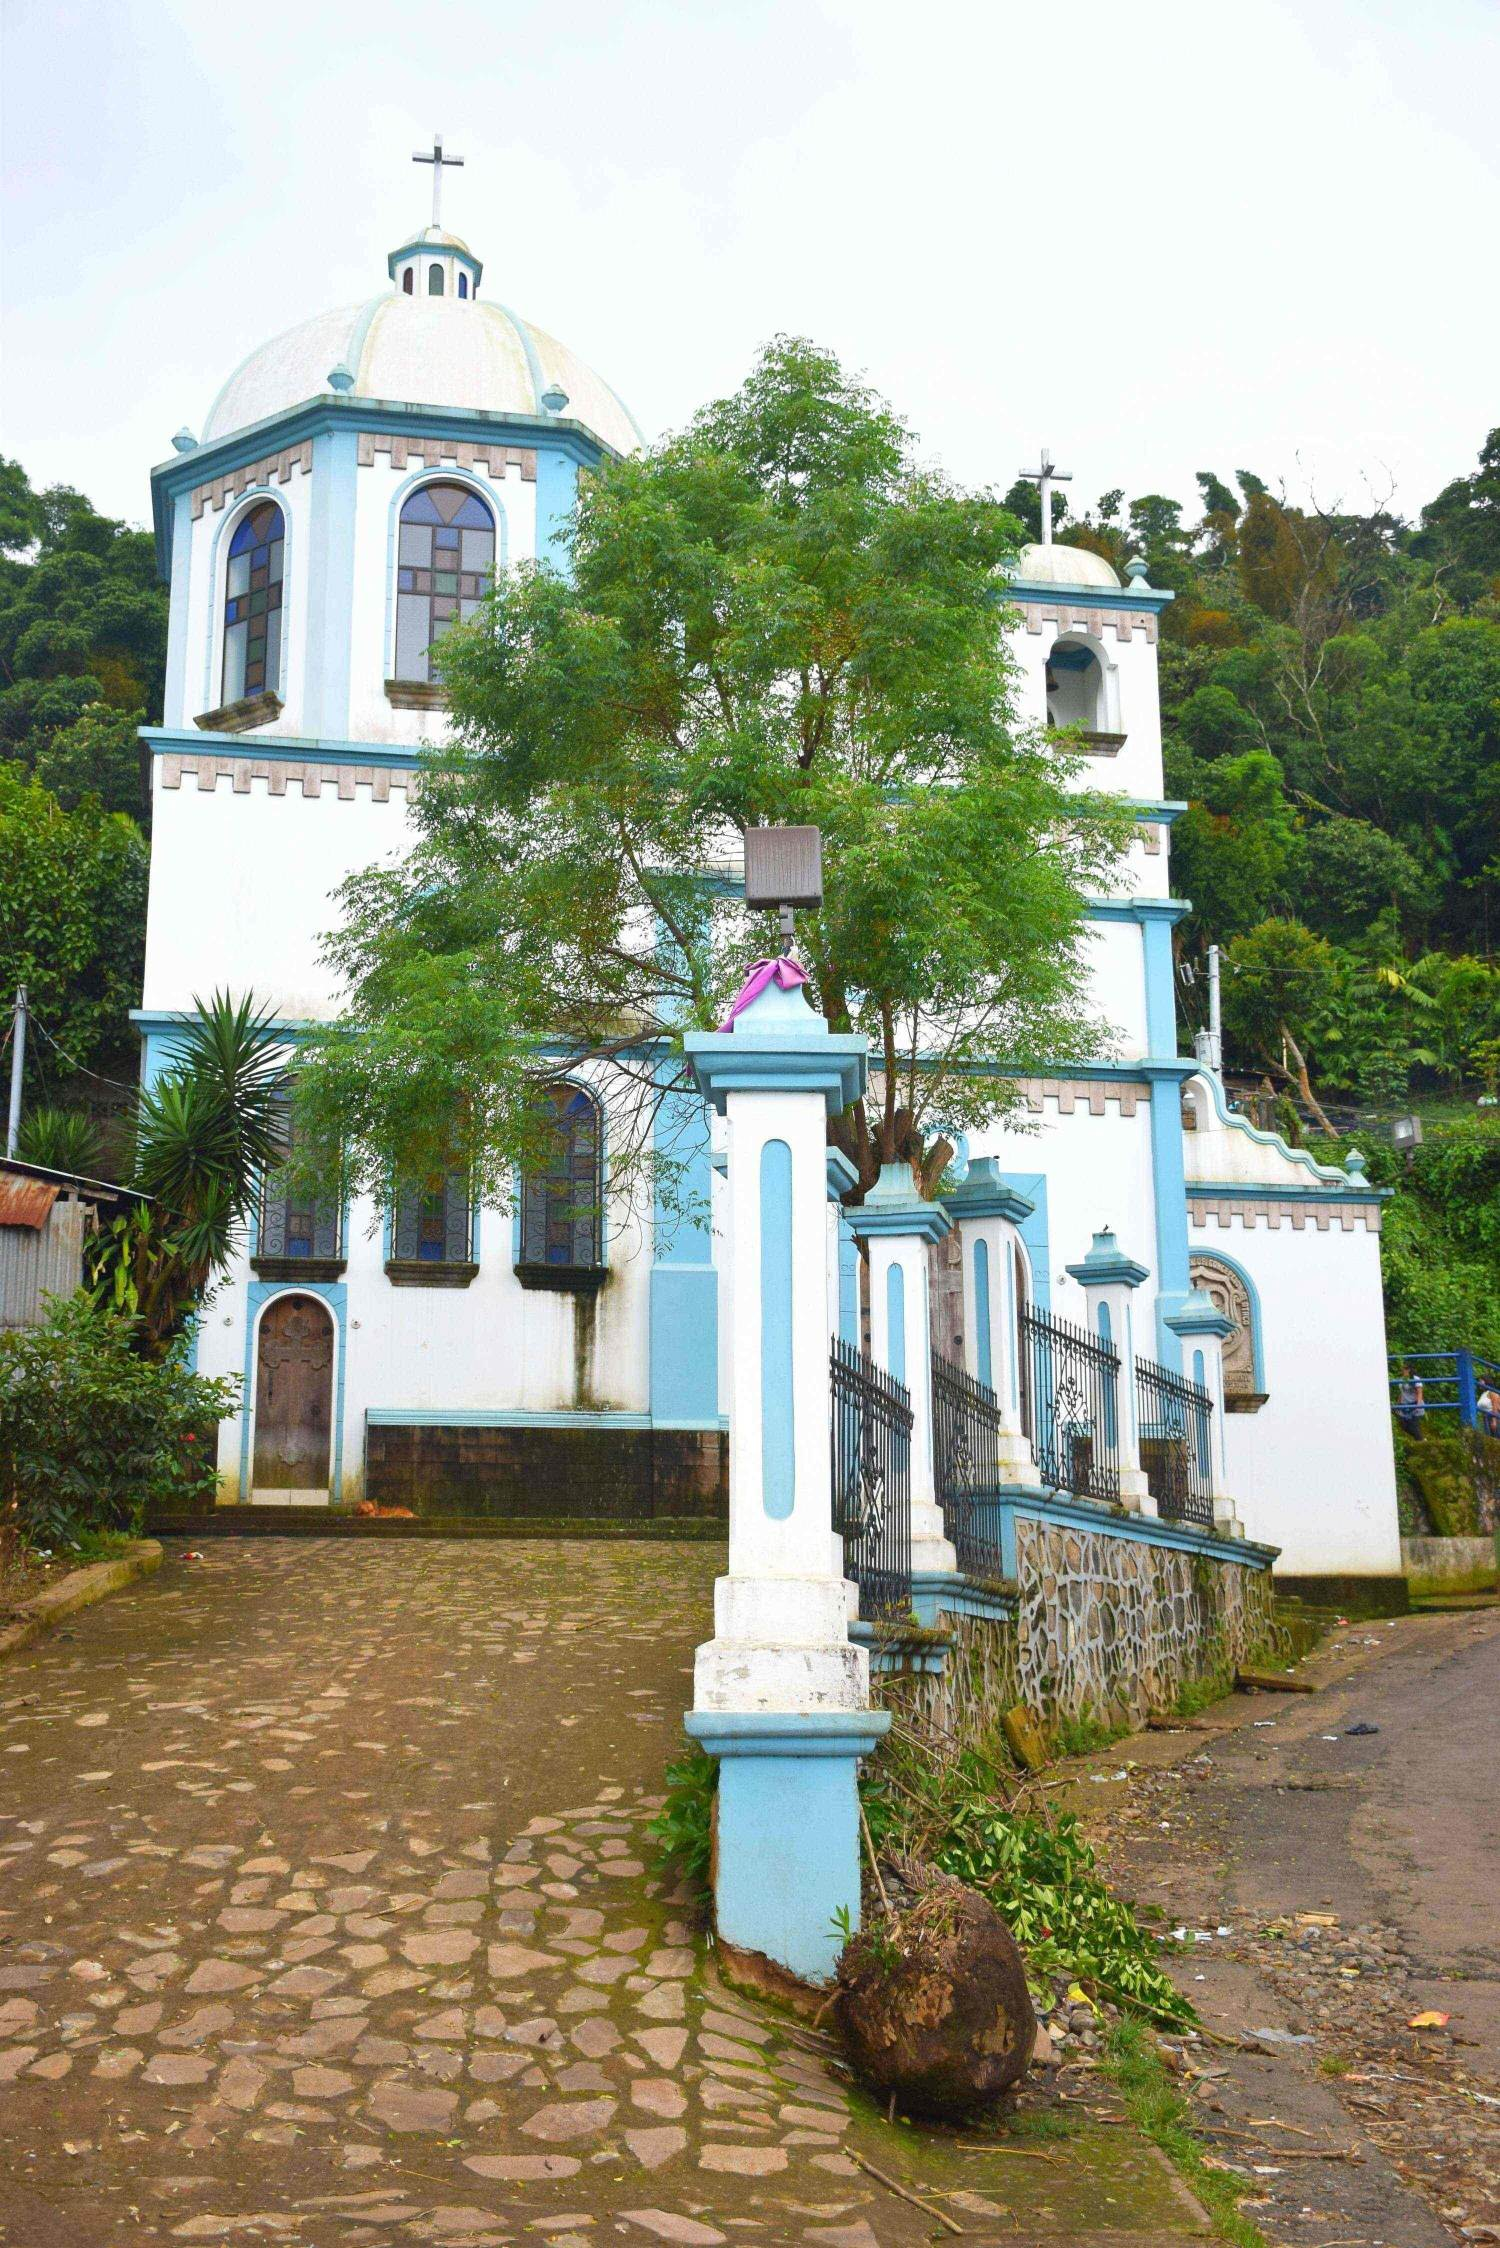 Ataco is a town on the ruta de las flores near Juayua